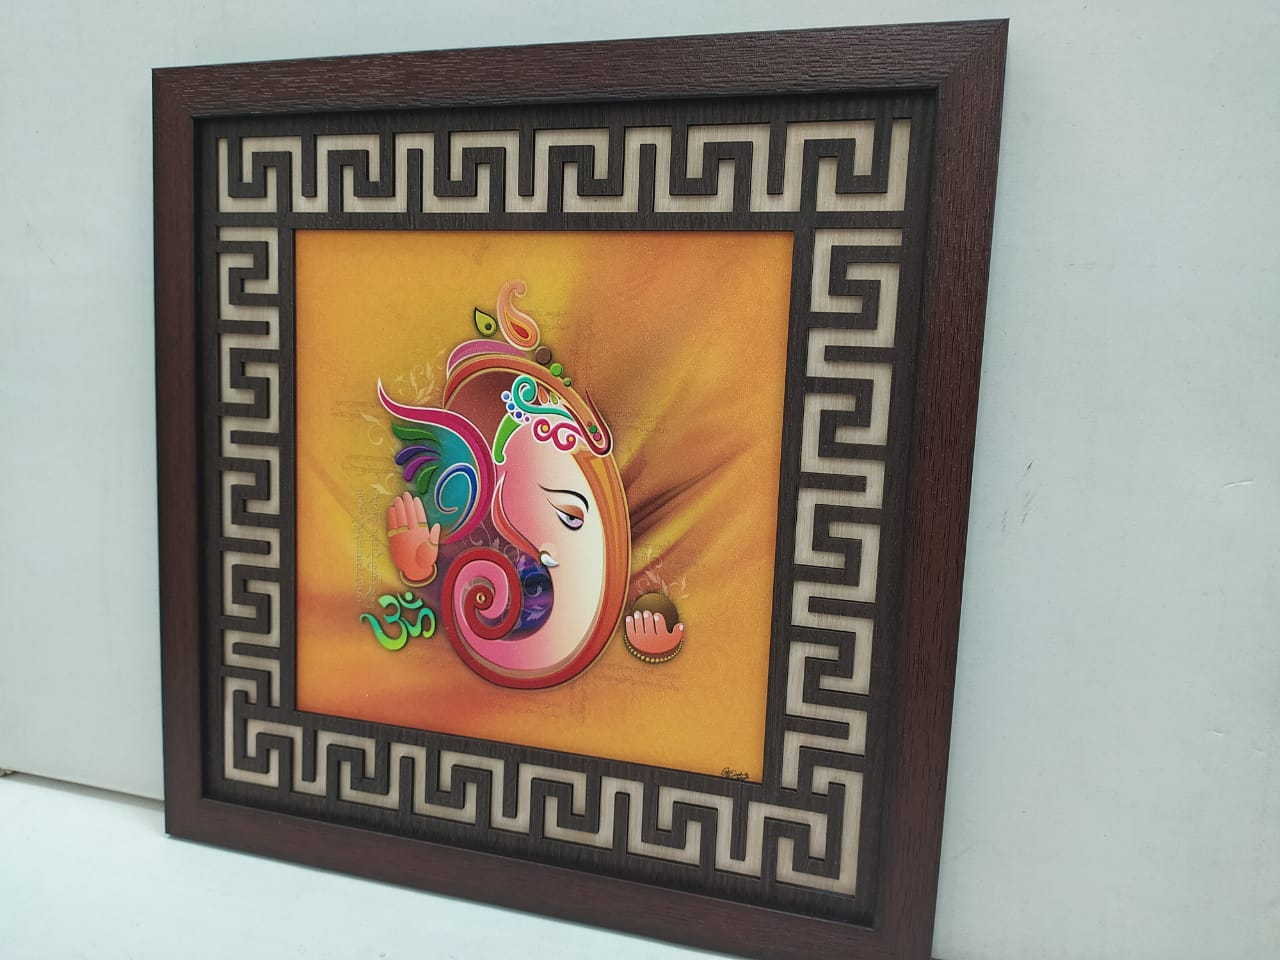 Ganesha wall hanging picture frame with cut design frame   CT260